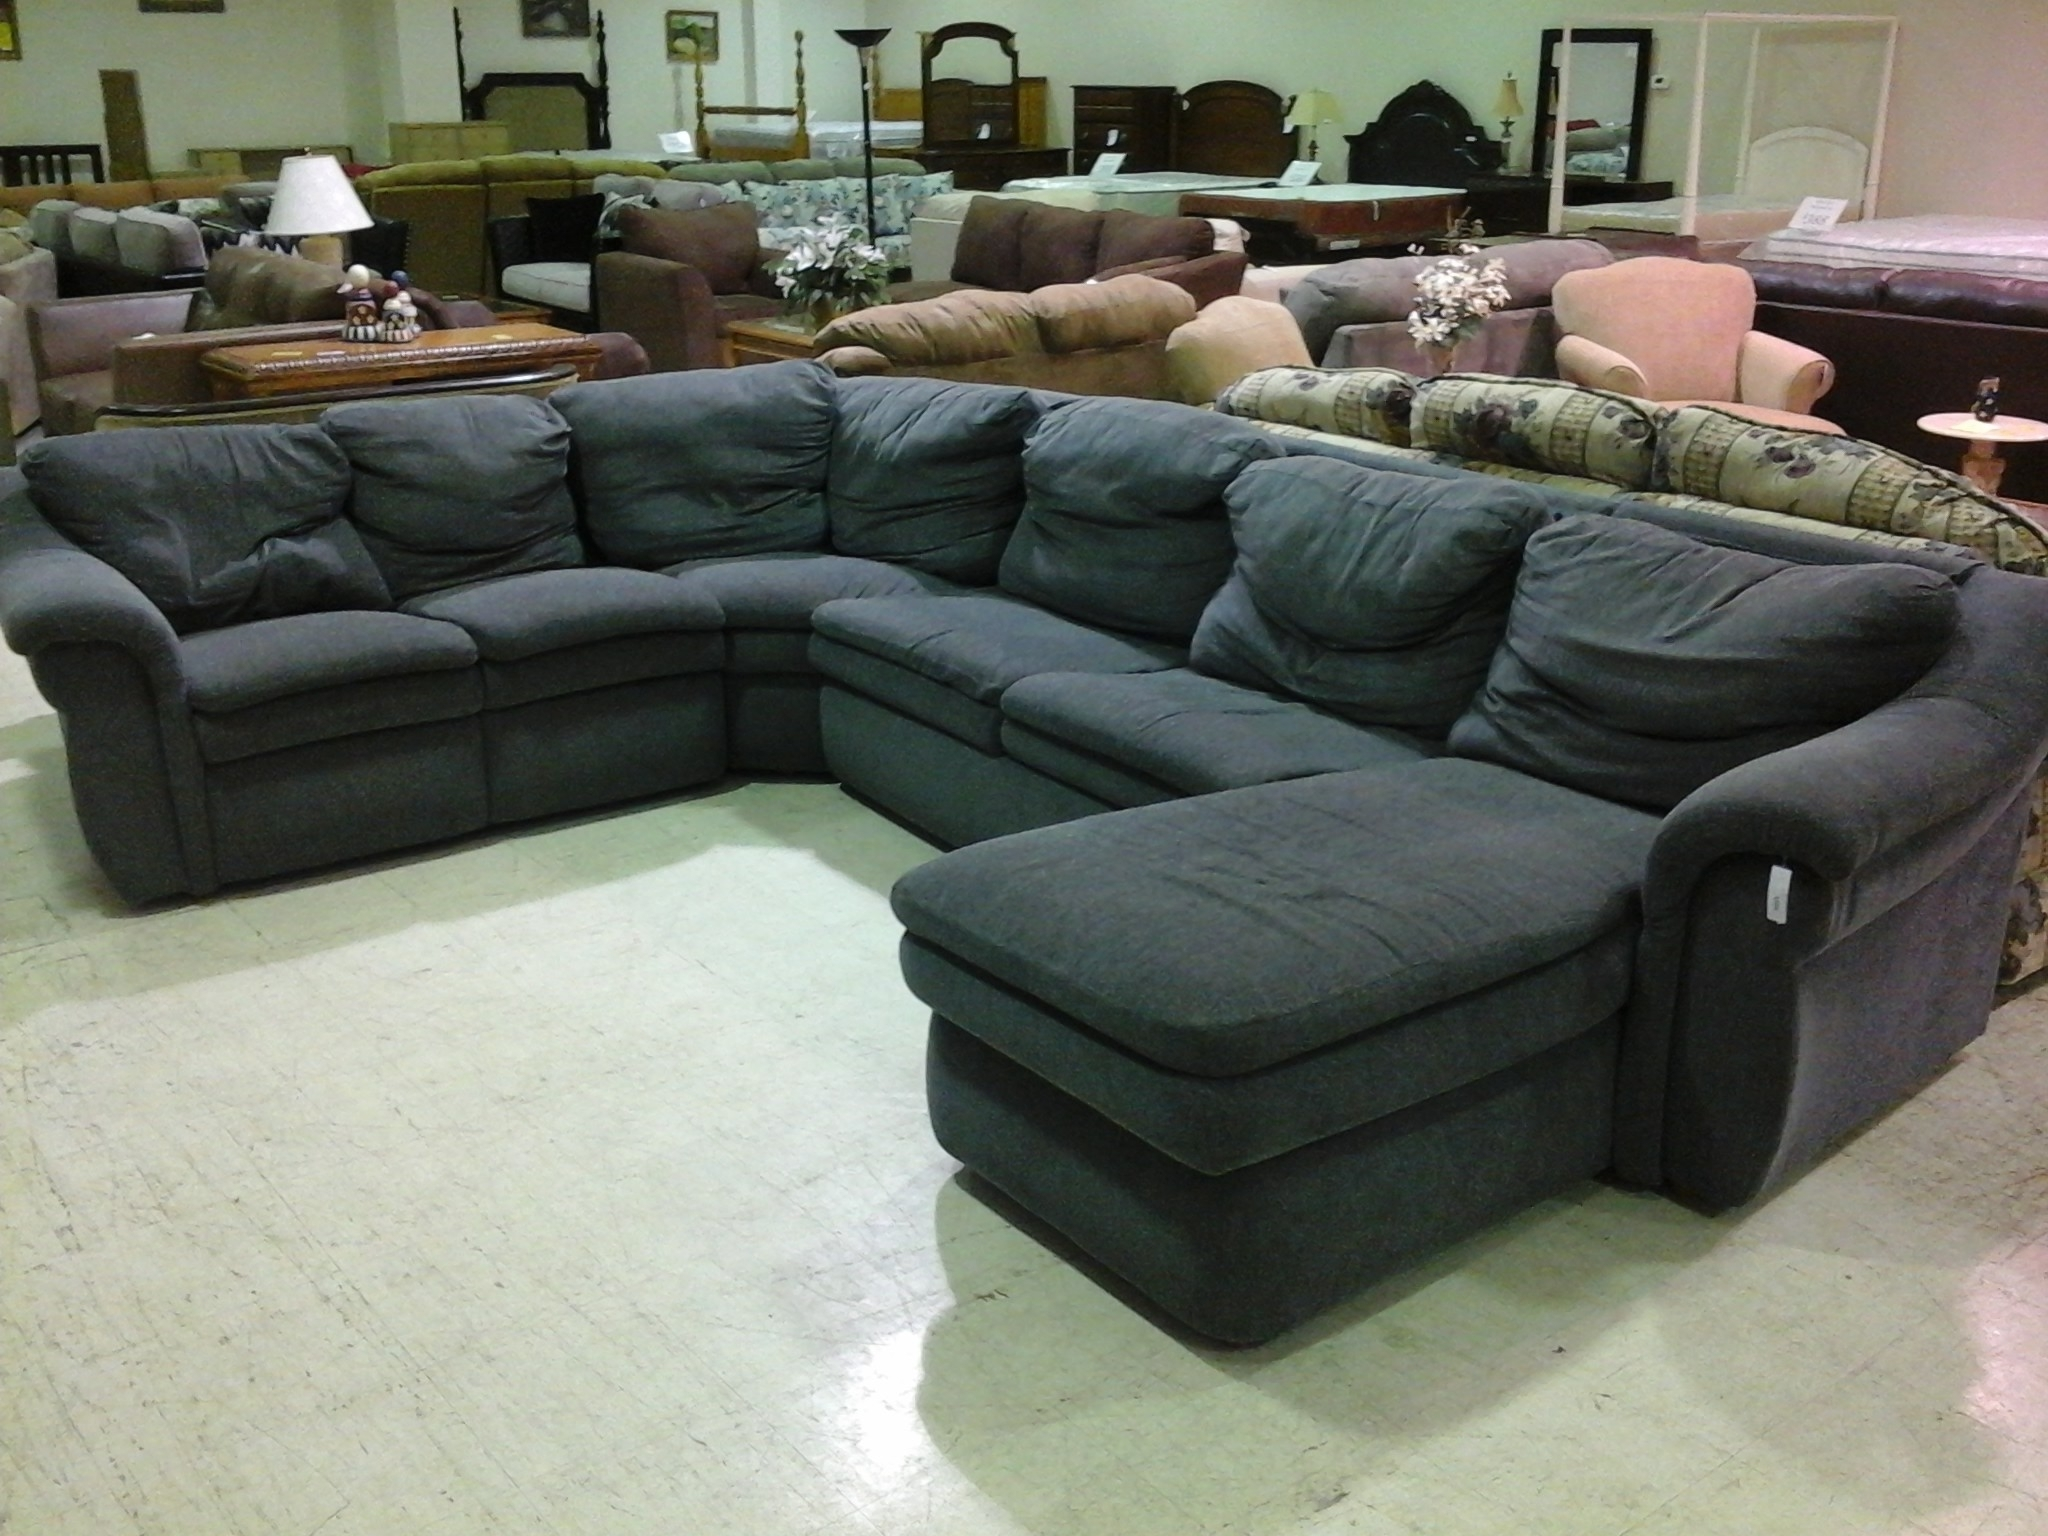 Well Liked Sofa : Big Lots Sectional Sofas Manhattan Sectional Sofa Big Lots Regarding Sectional Sofas At Big Lots (View 14 of 15)